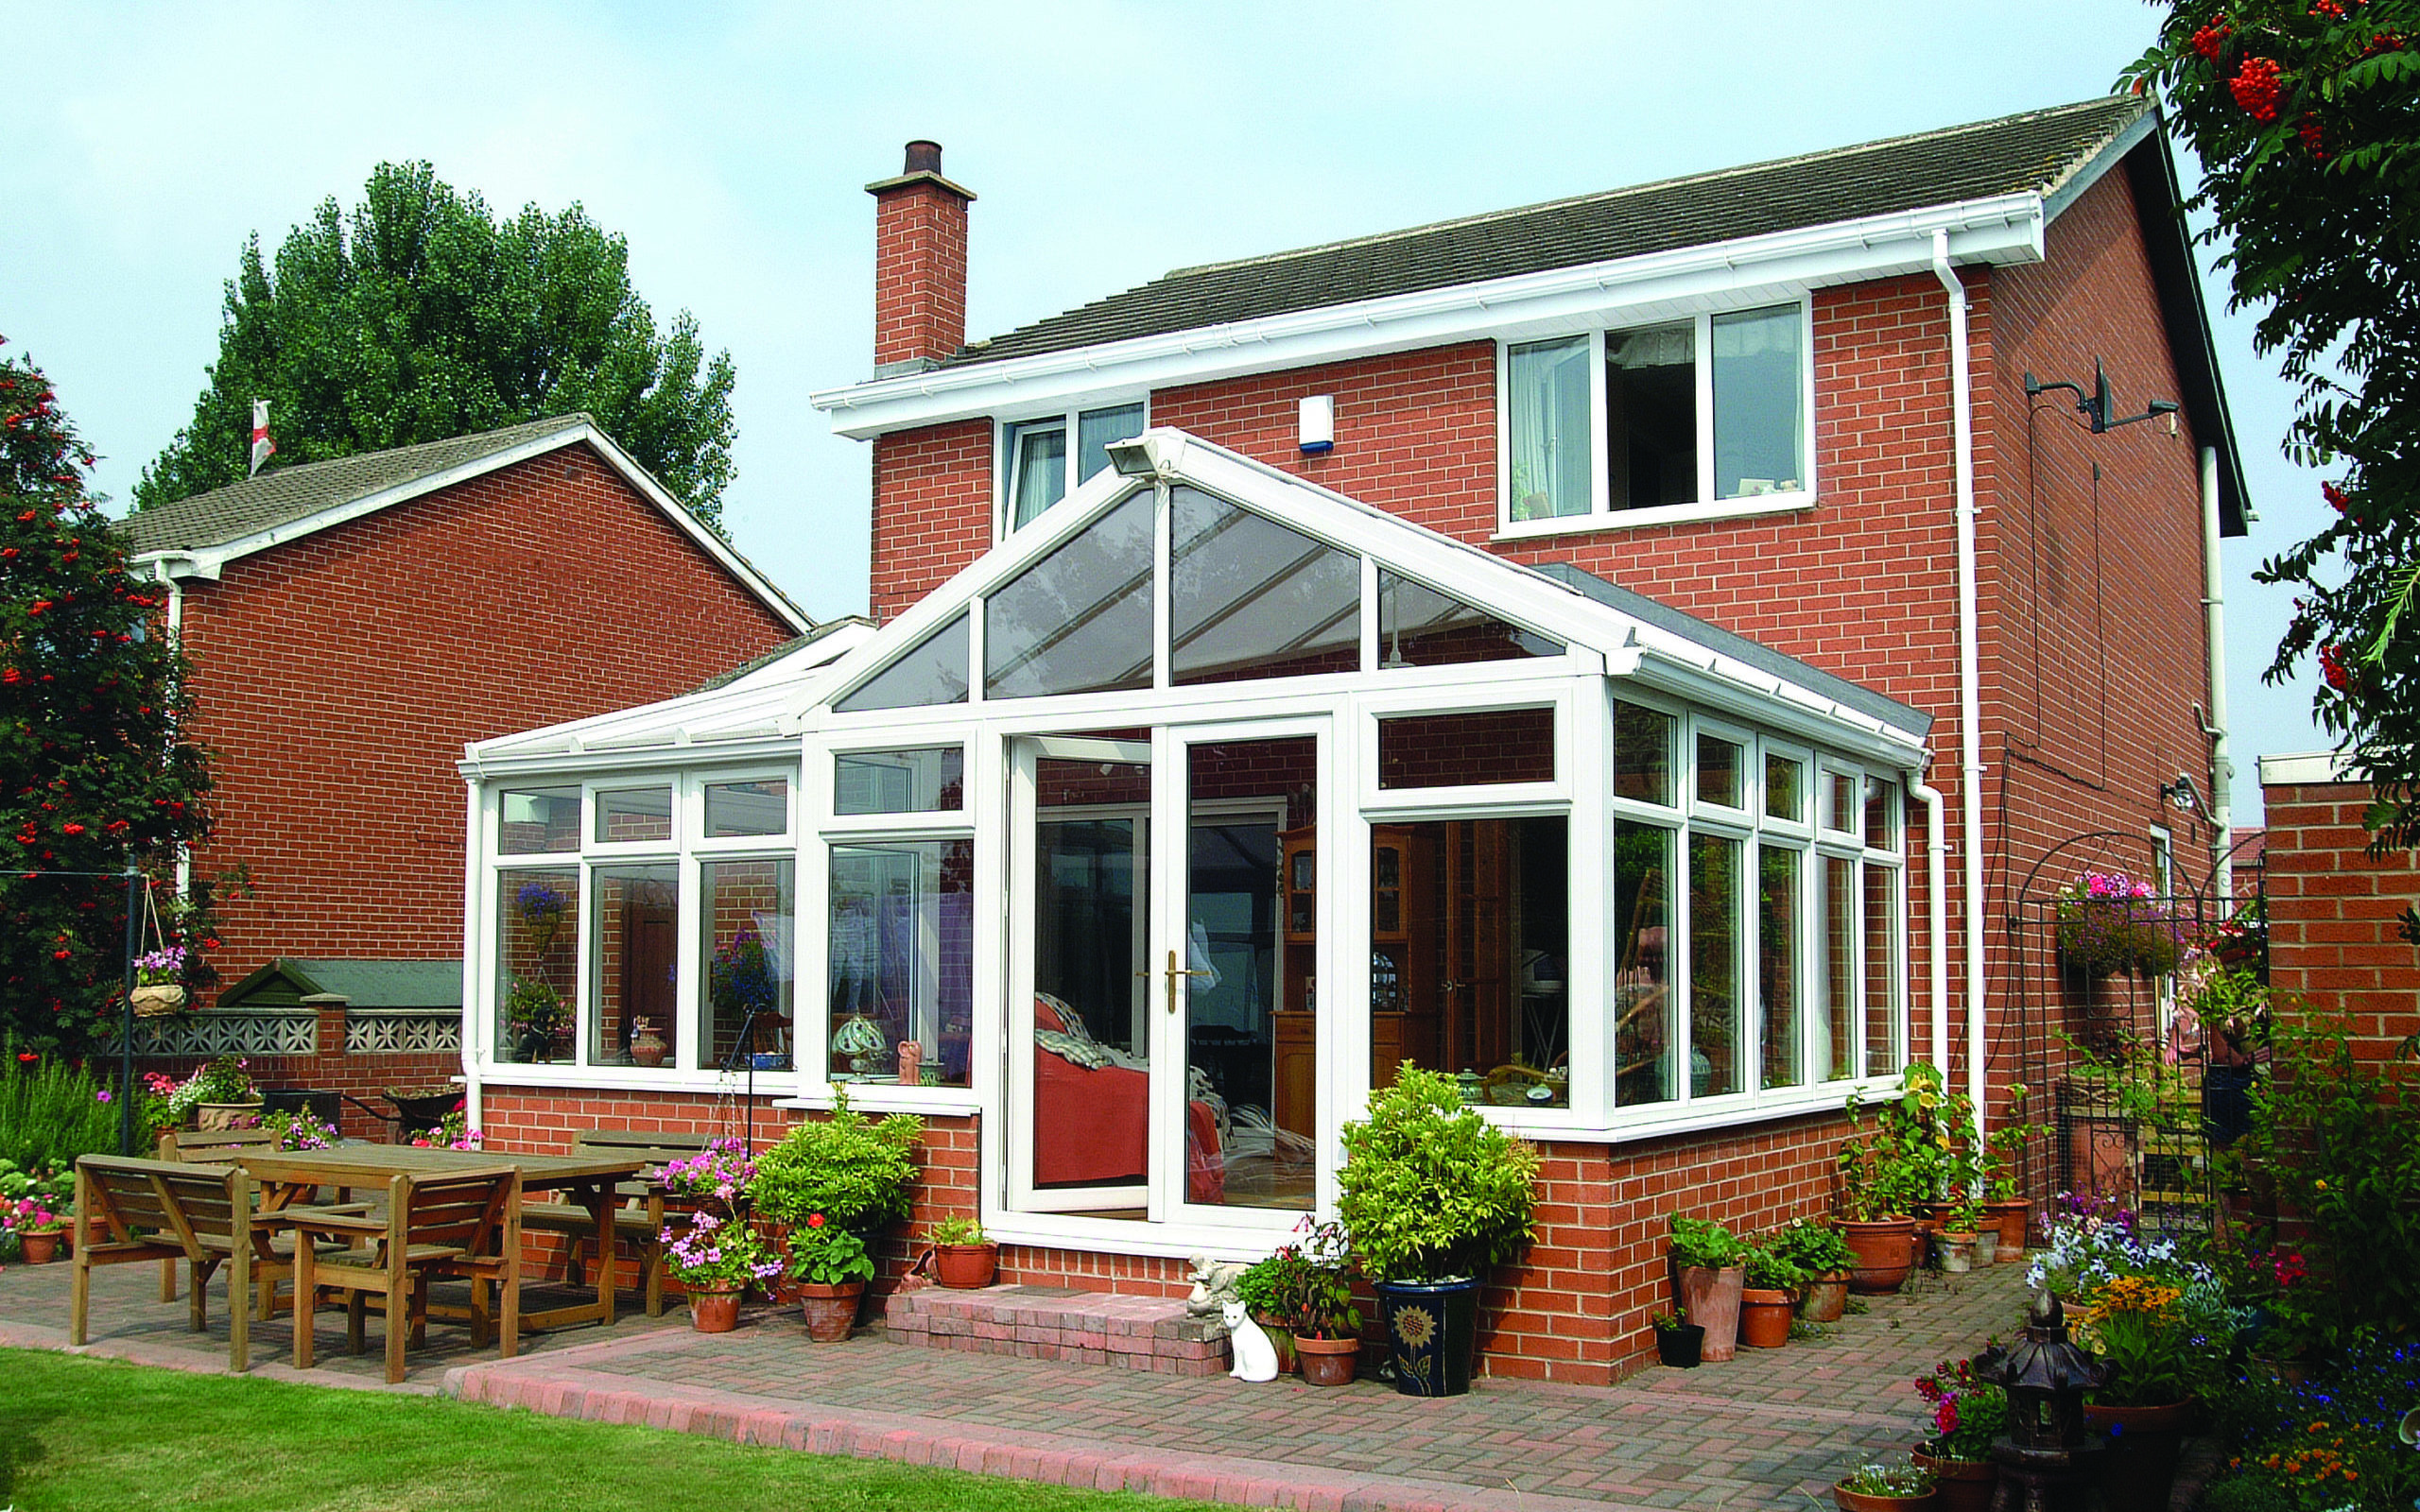 conservatory_gable ended